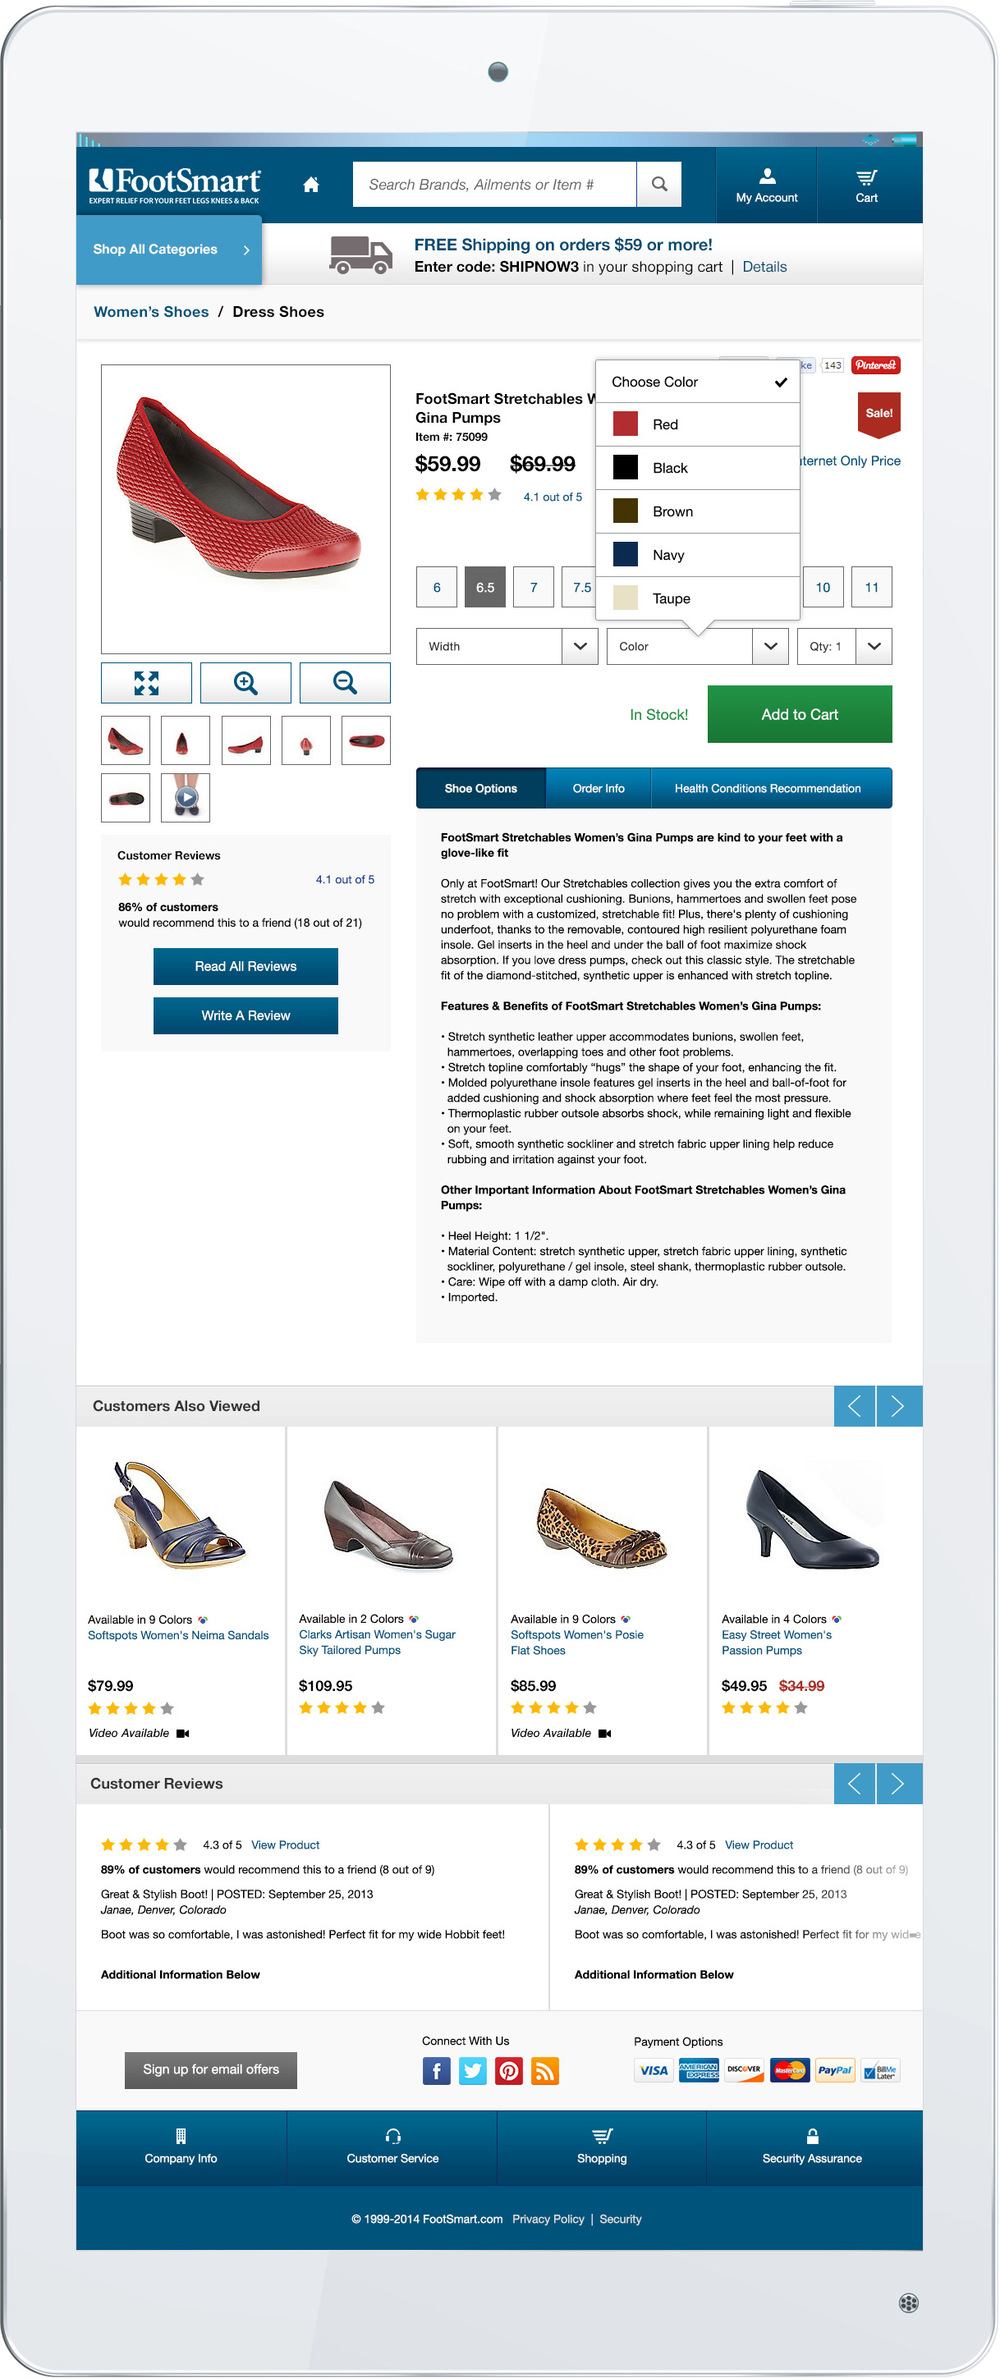 Product Detail Page with Color Selection